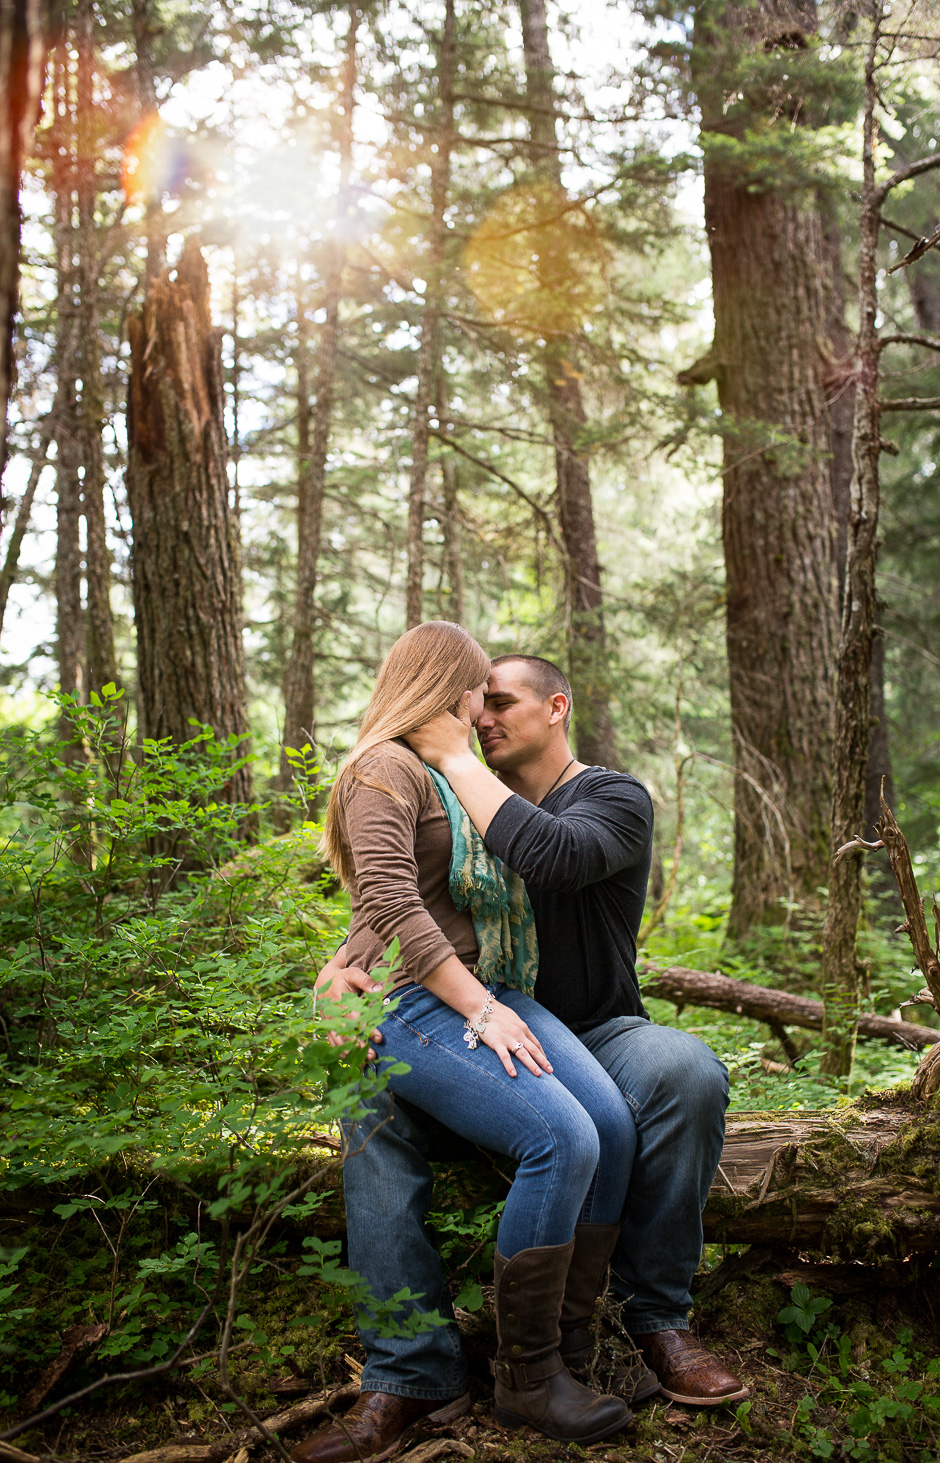 anchorage_couples_engagement_photographer_160626